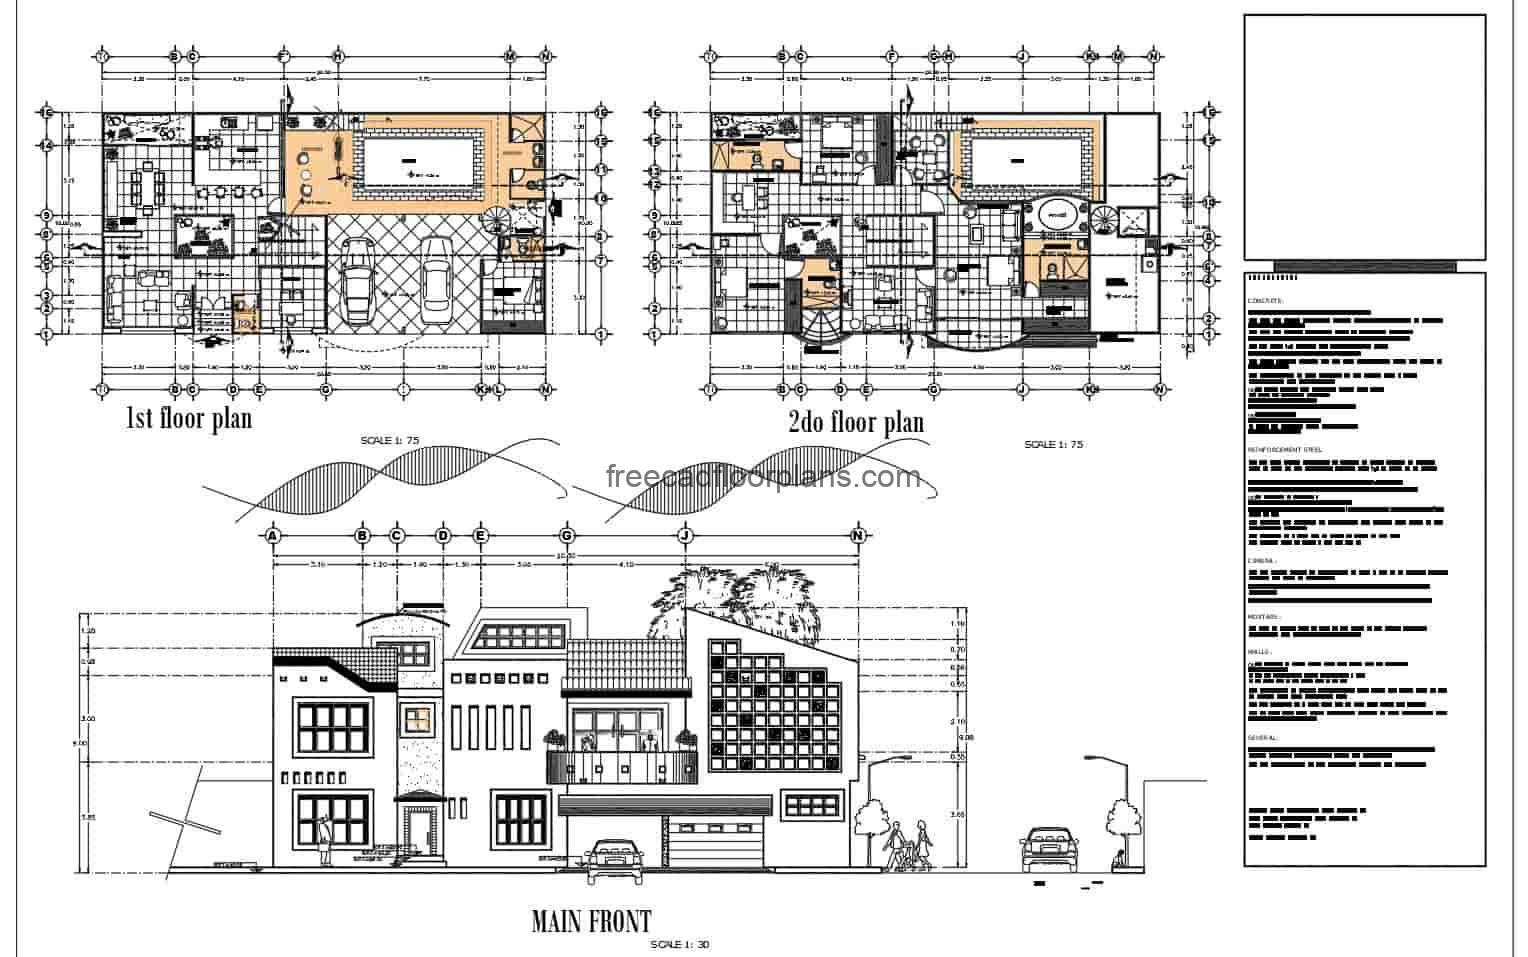 Complete Architectural Project drawn in 2D plans of DWG residence of two levels with swimming pool and four rooms in total, three rooms in second level and one room underneath. The residence also has a jacuzzy area, garage for two vehicles, living room, kitchen, dining room, and five bathrooms in total. Autocad DWG plans for free download.